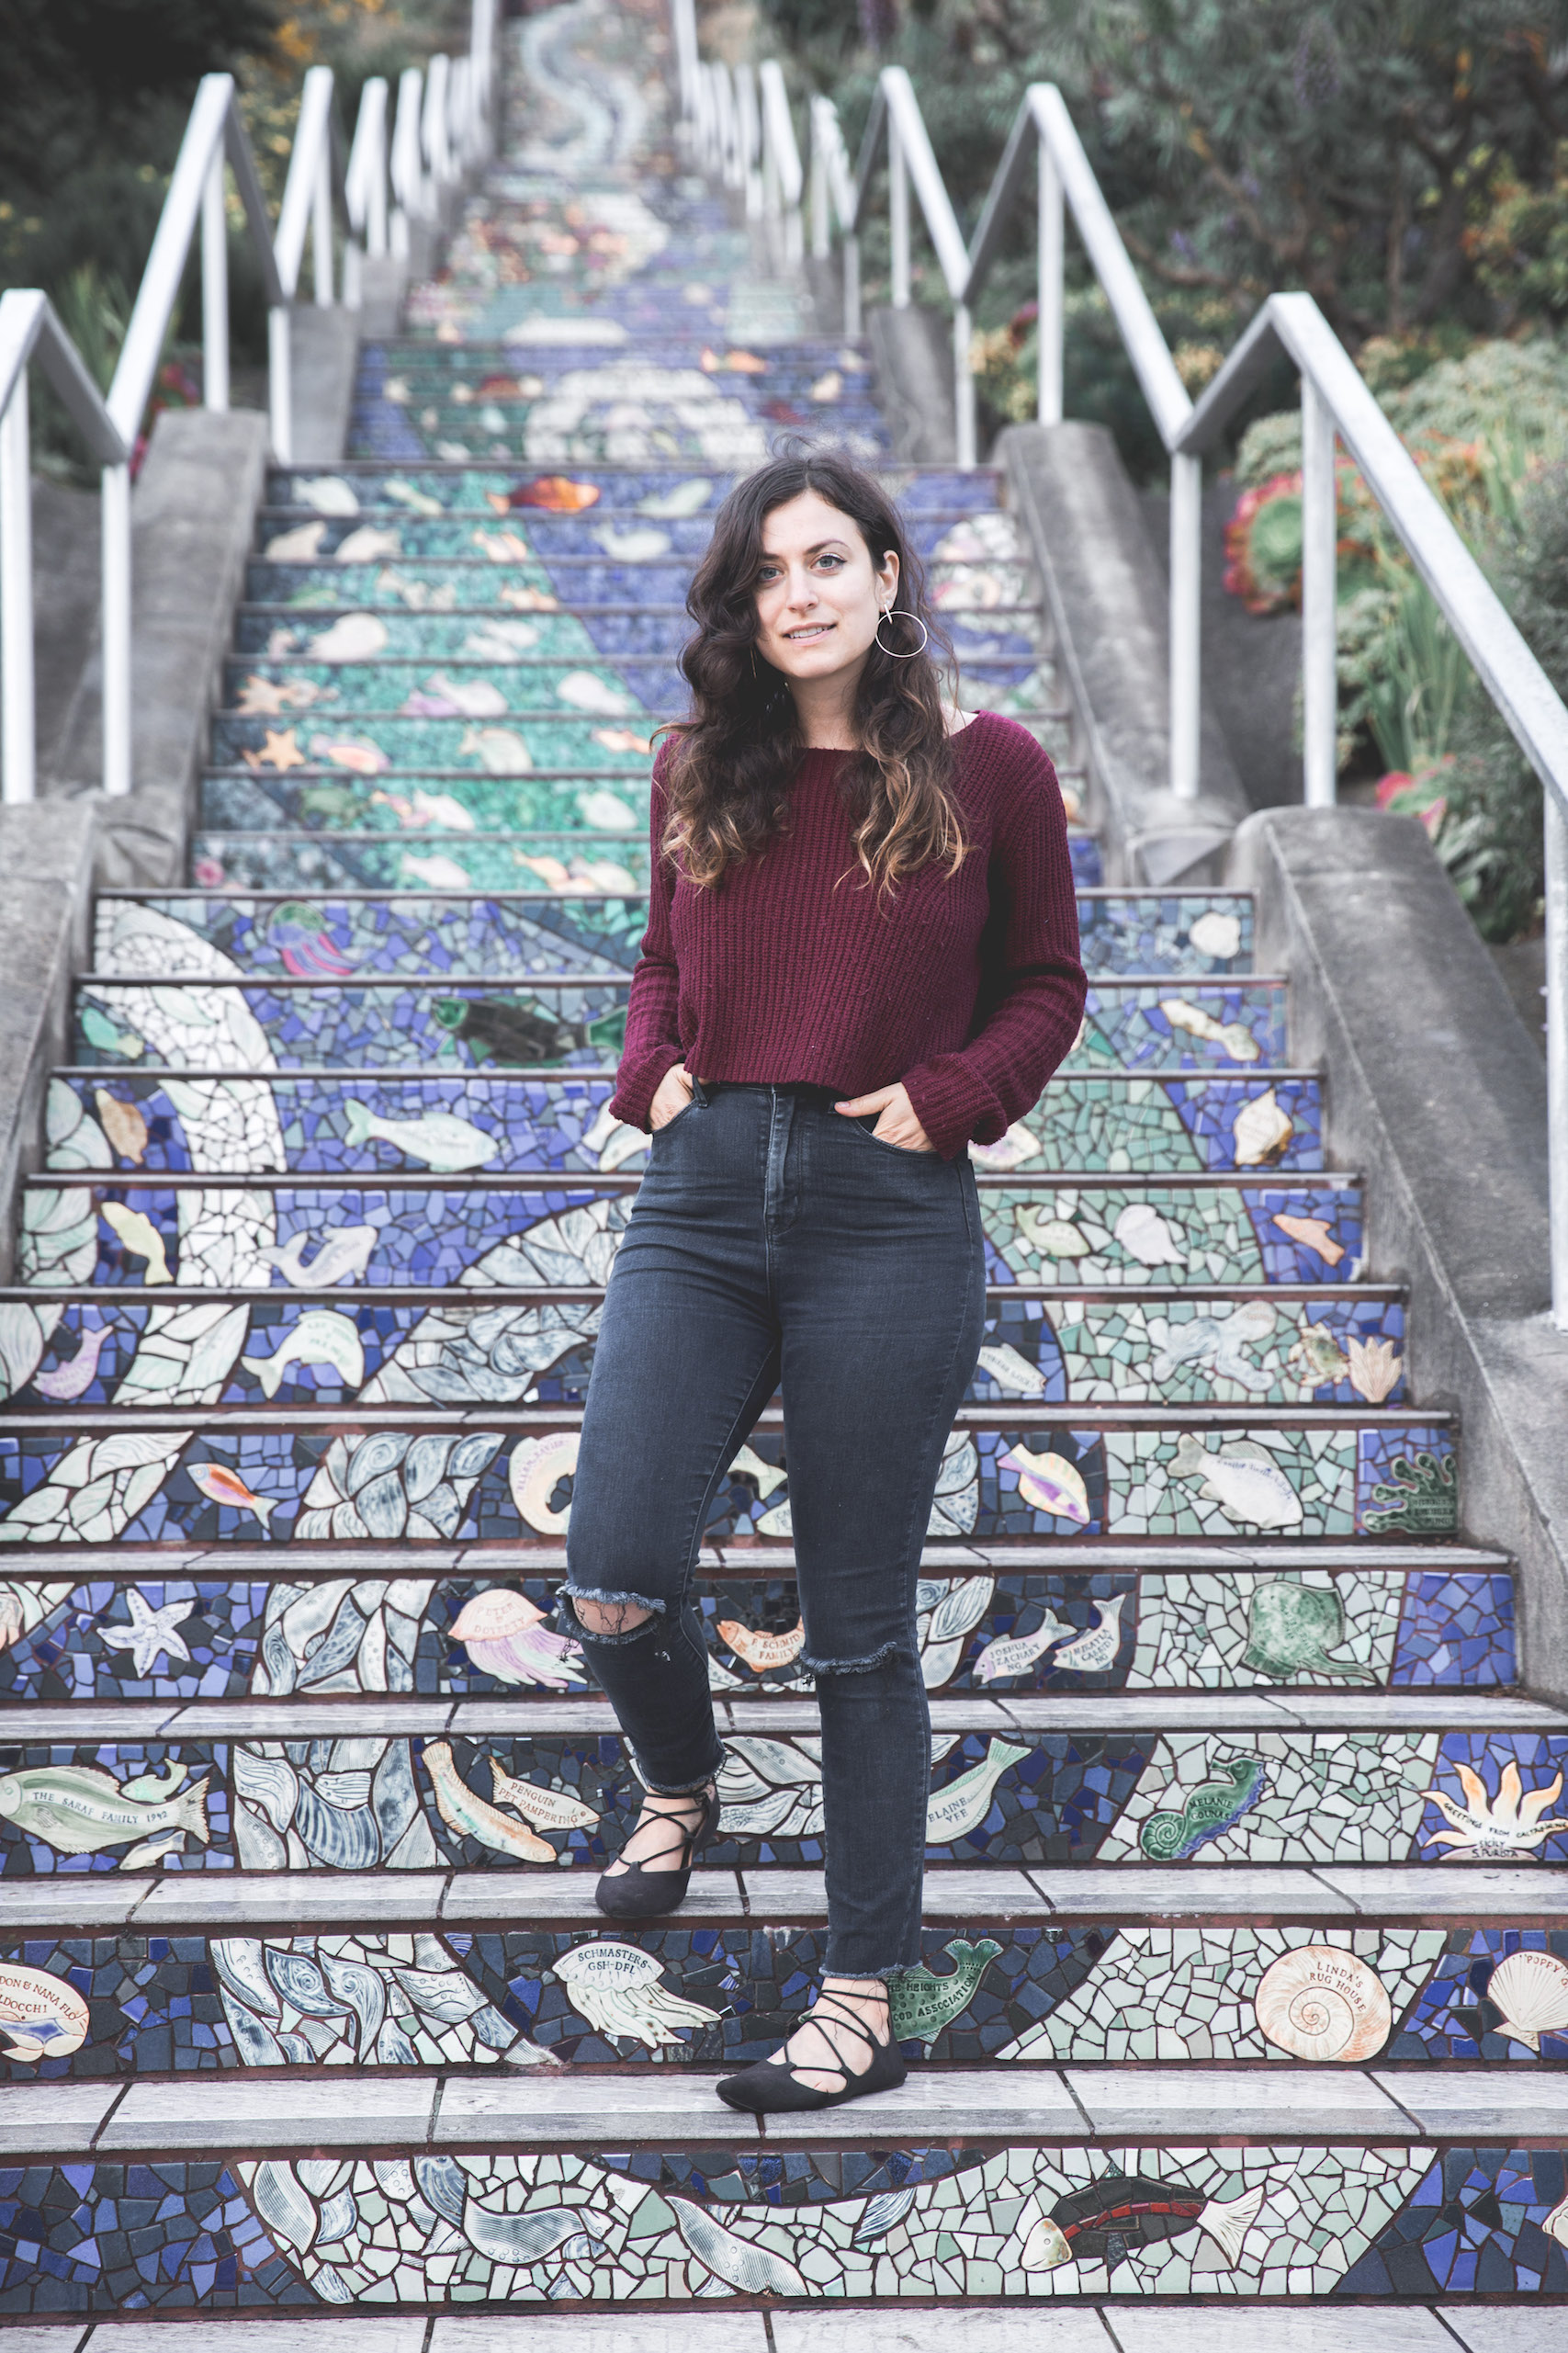 Kelsey standing on the Tiled Steps in San Francisco